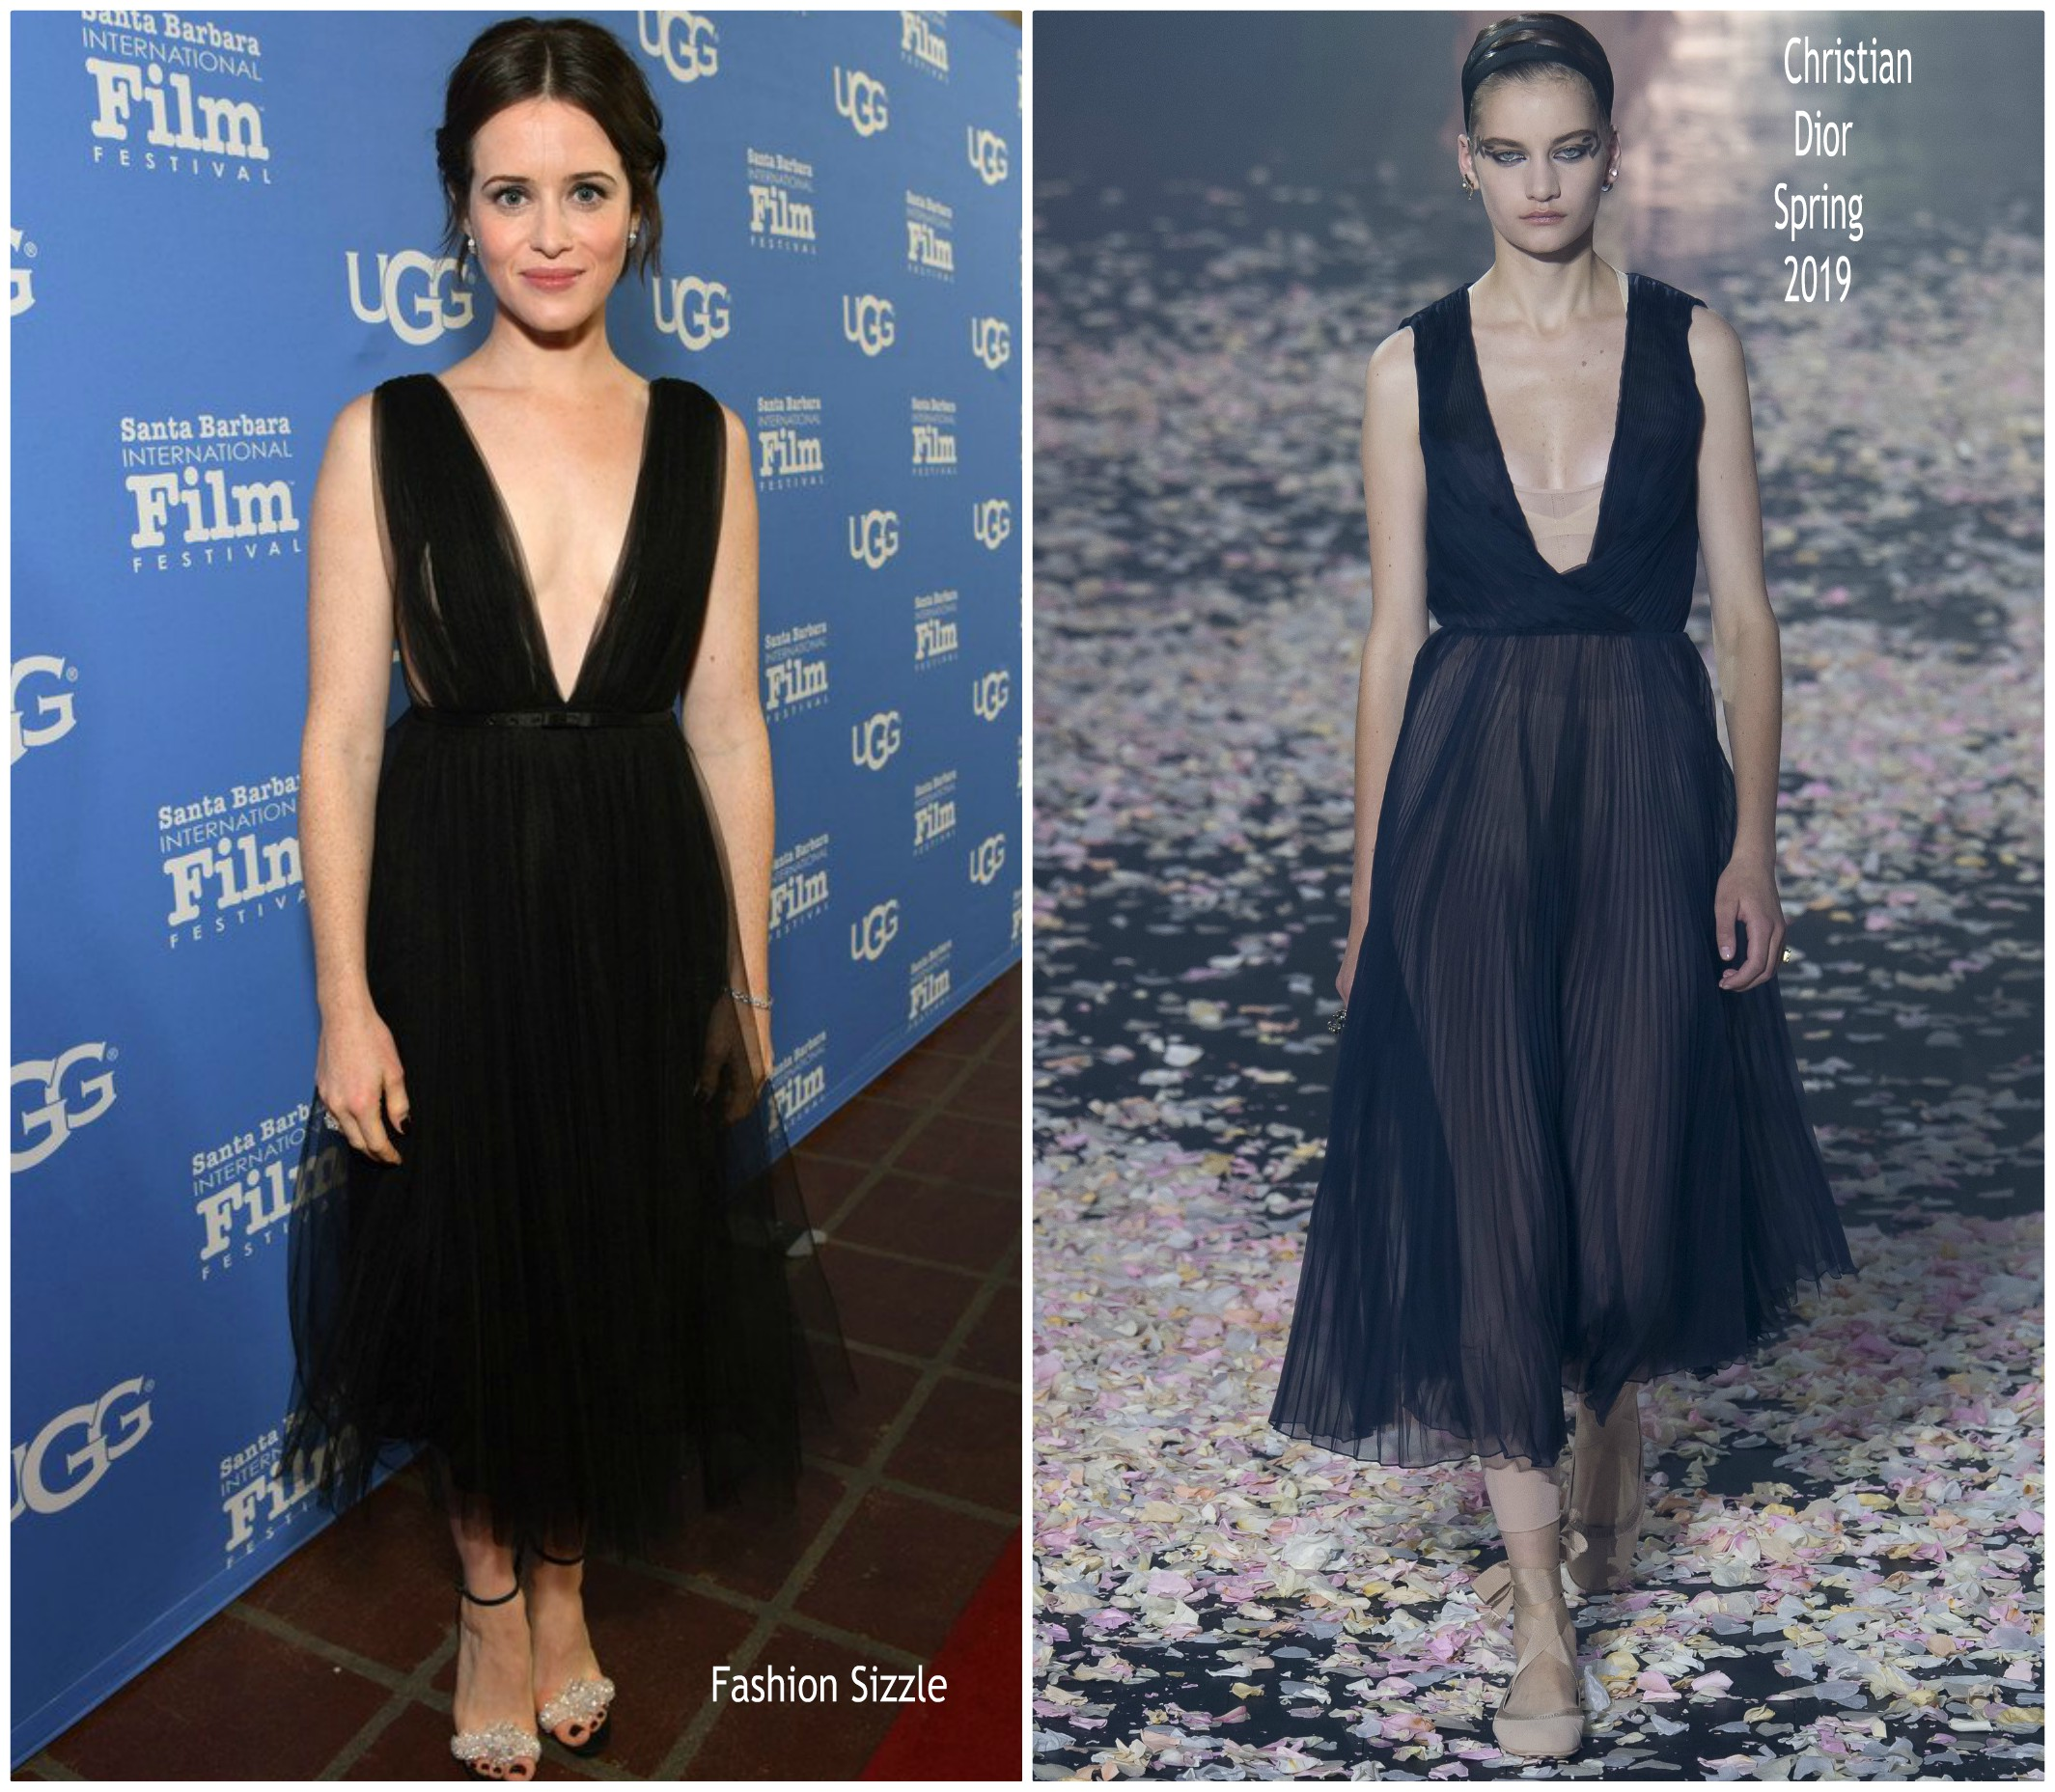 claire-foy-in-christian-dior-34th-santa-barbara-international-film-festival